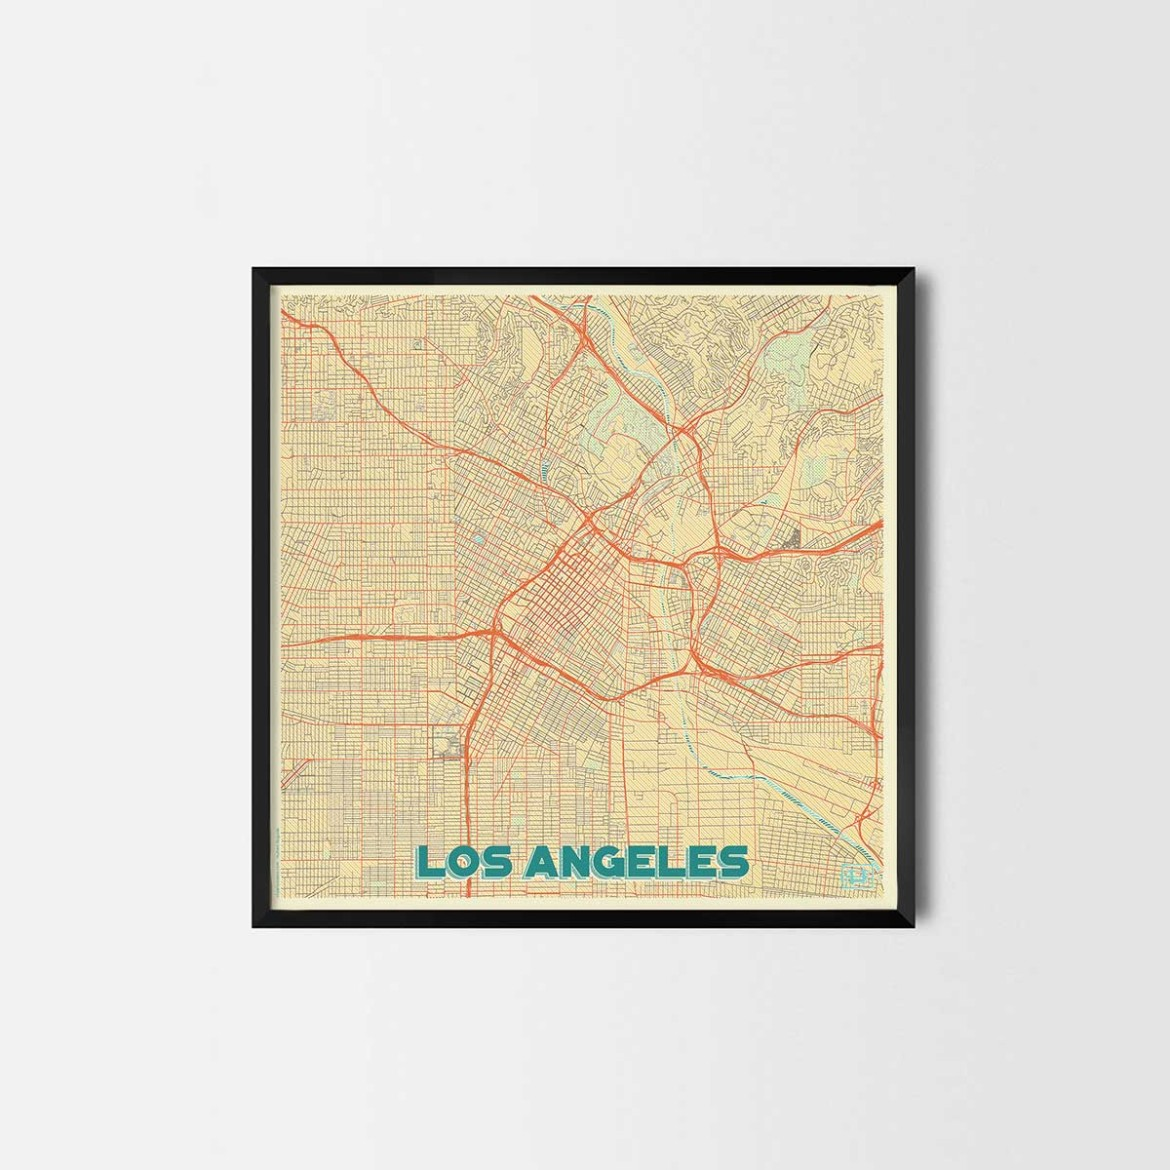 Los angeles gift map art prints and posters home decor for Home decor los angeles